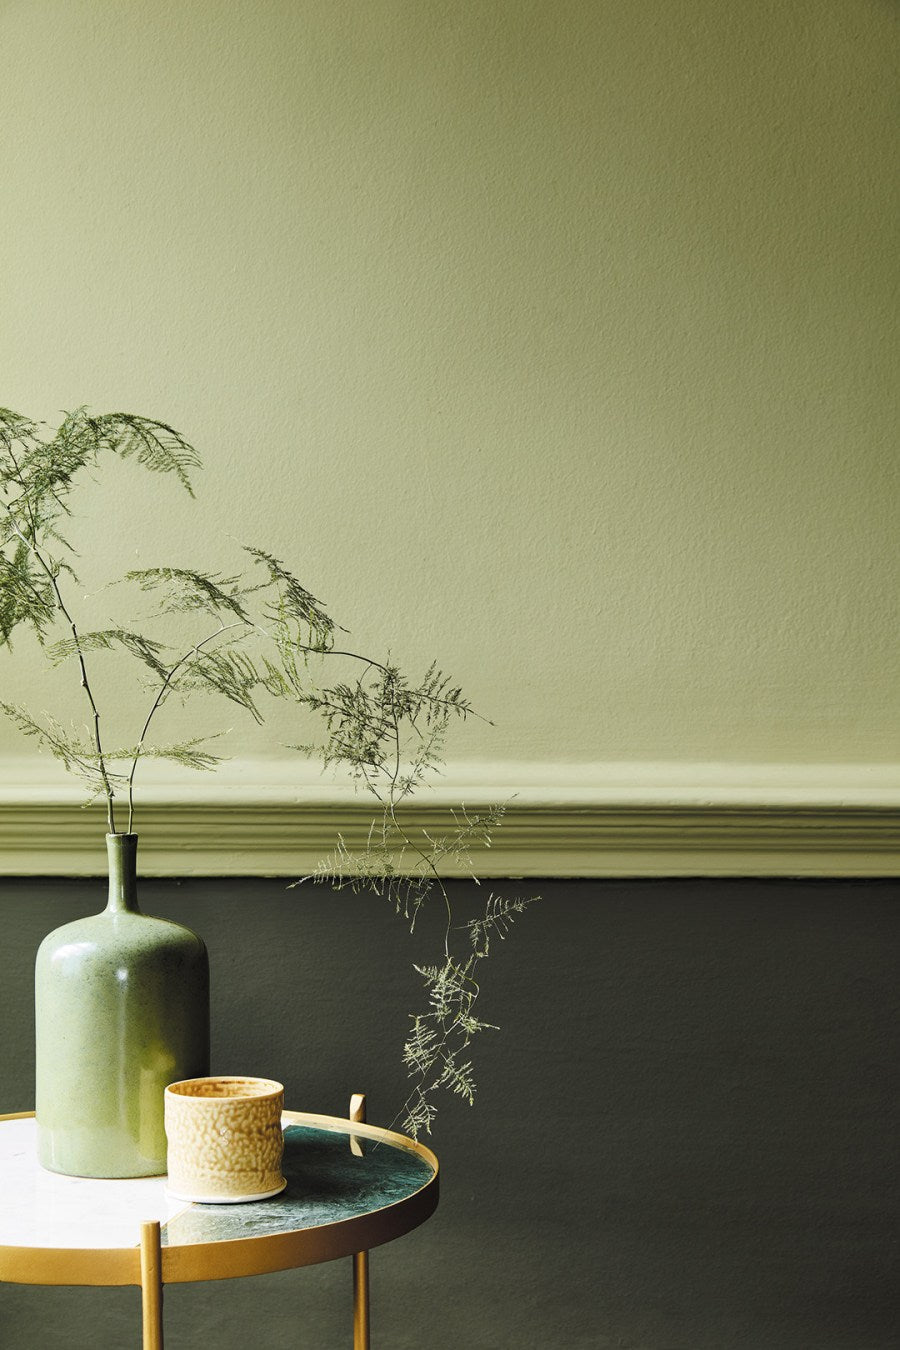 Different shades of green above and below dado rail with plants on table